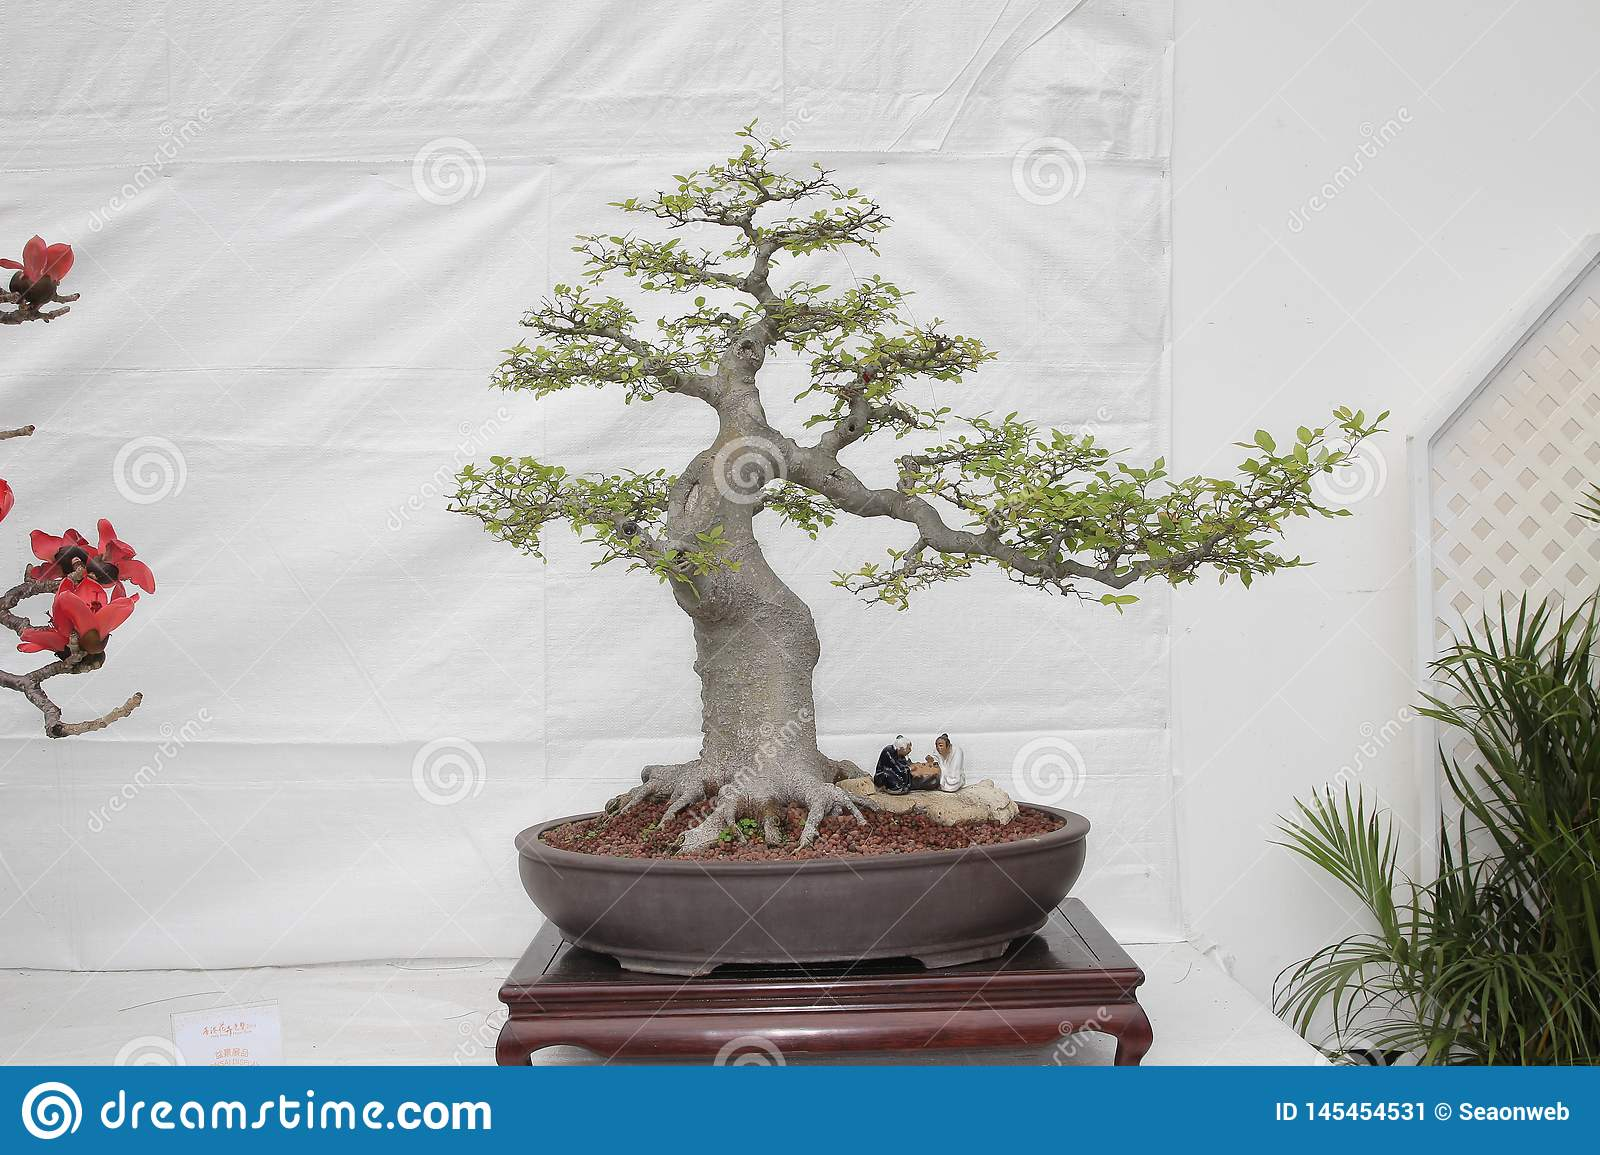 Small Bonsai Tree In A Ceramic Pot Cascade Style Stock Image Image Of Chinese Horticulture 145454531